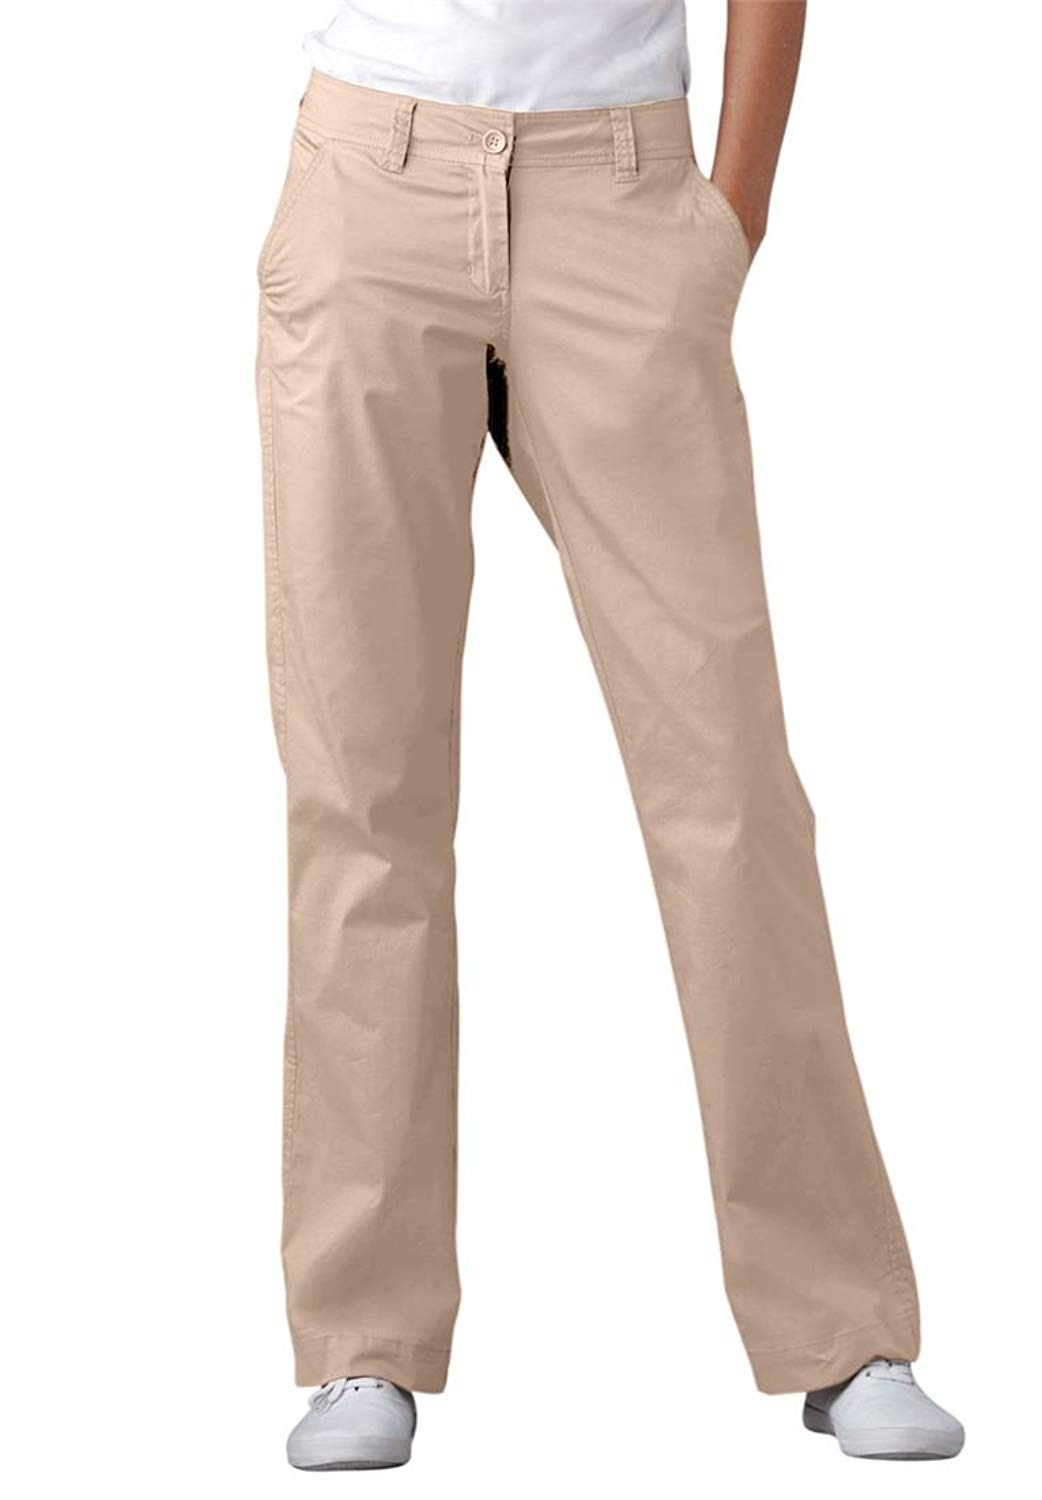 2bfce7a124a6 Get Quotations · Ellos Women s Plus Size Chinos